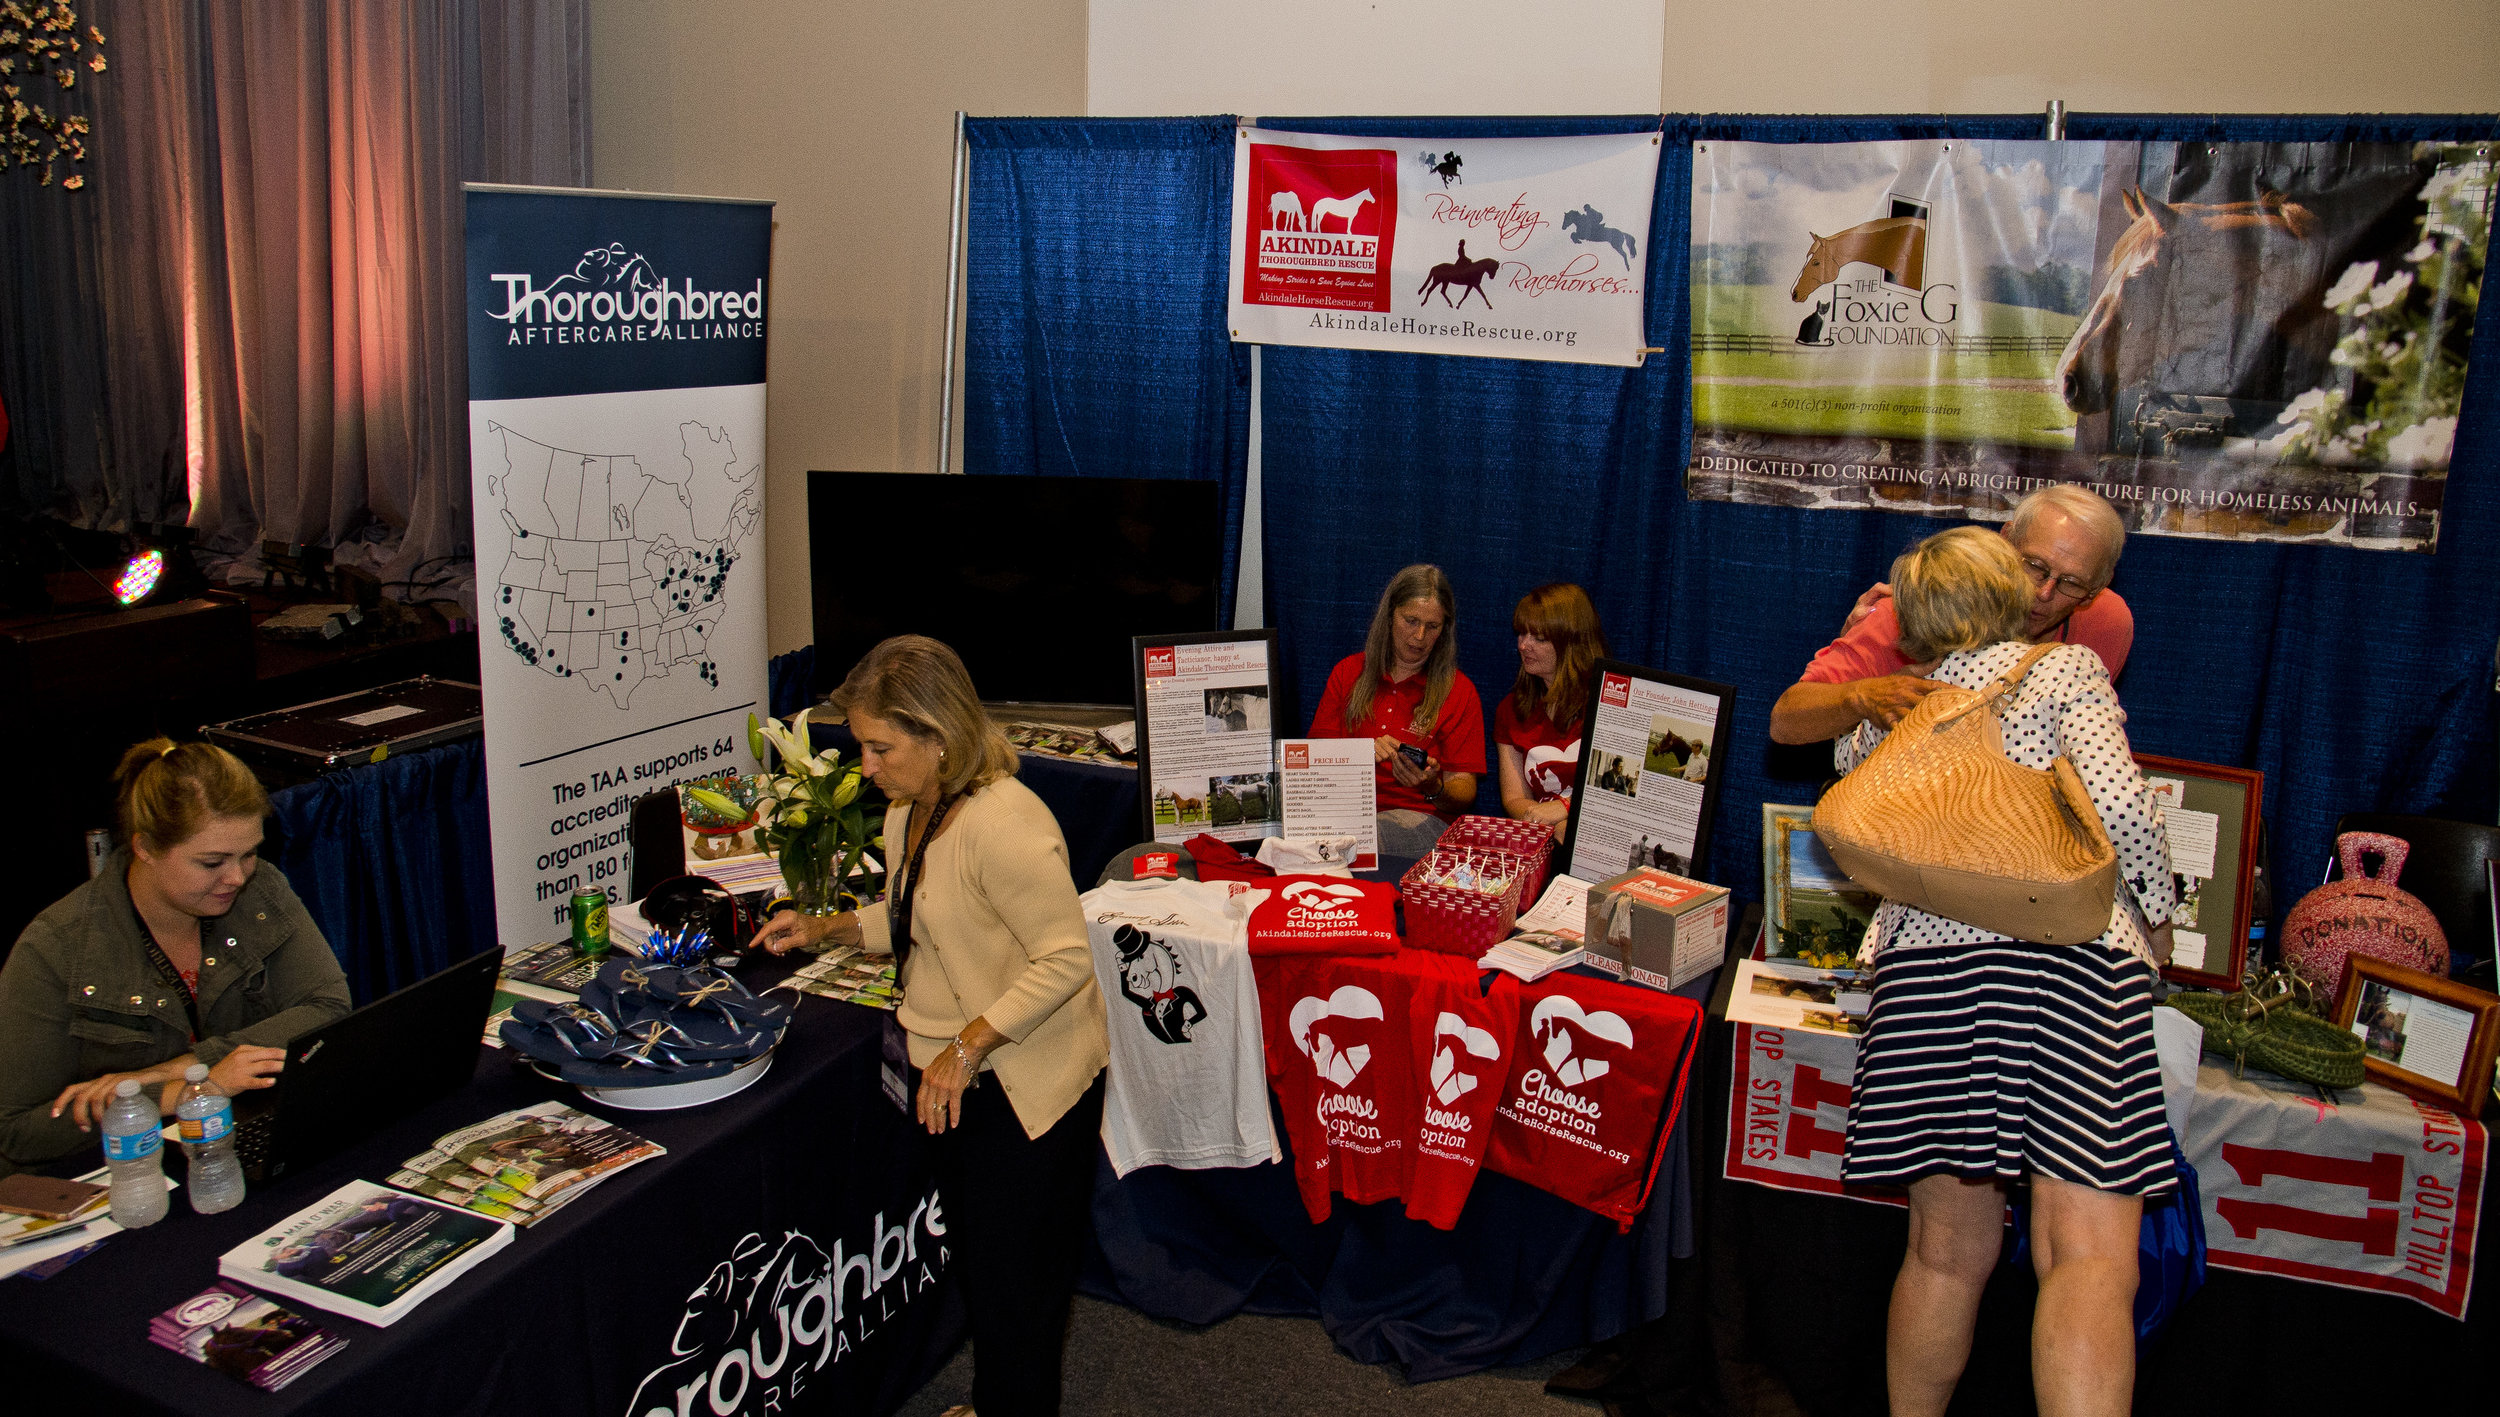 The TAA and several of its accredited organizations in the TAA Aftercare Hub at Equestricon 2017 (Eclipse Sportswire)